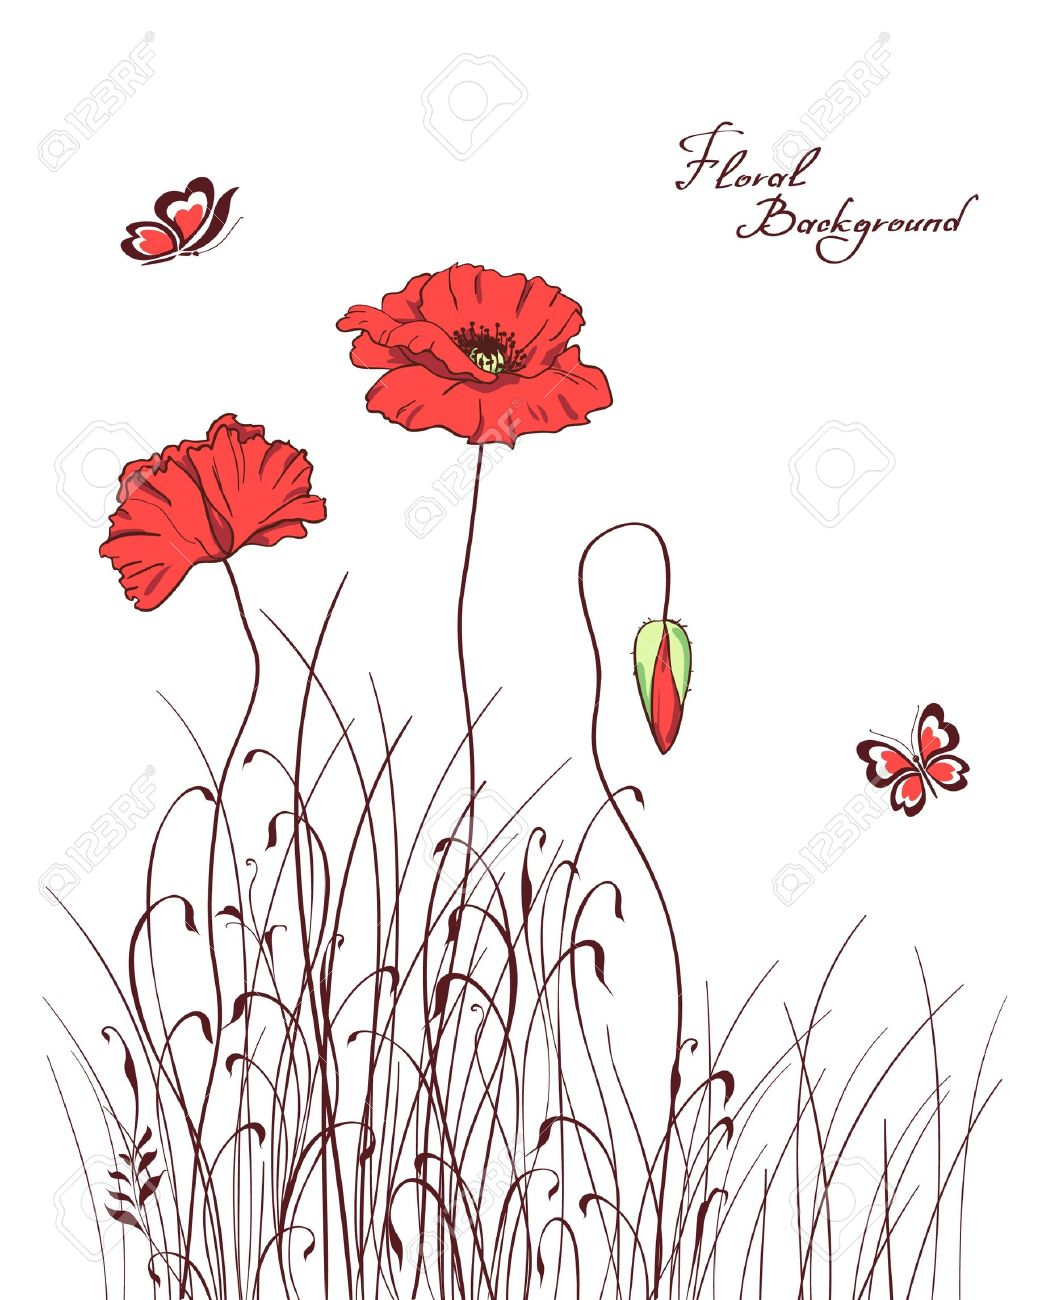 Red Poppy Grass Silhouettes Background Stock Vector